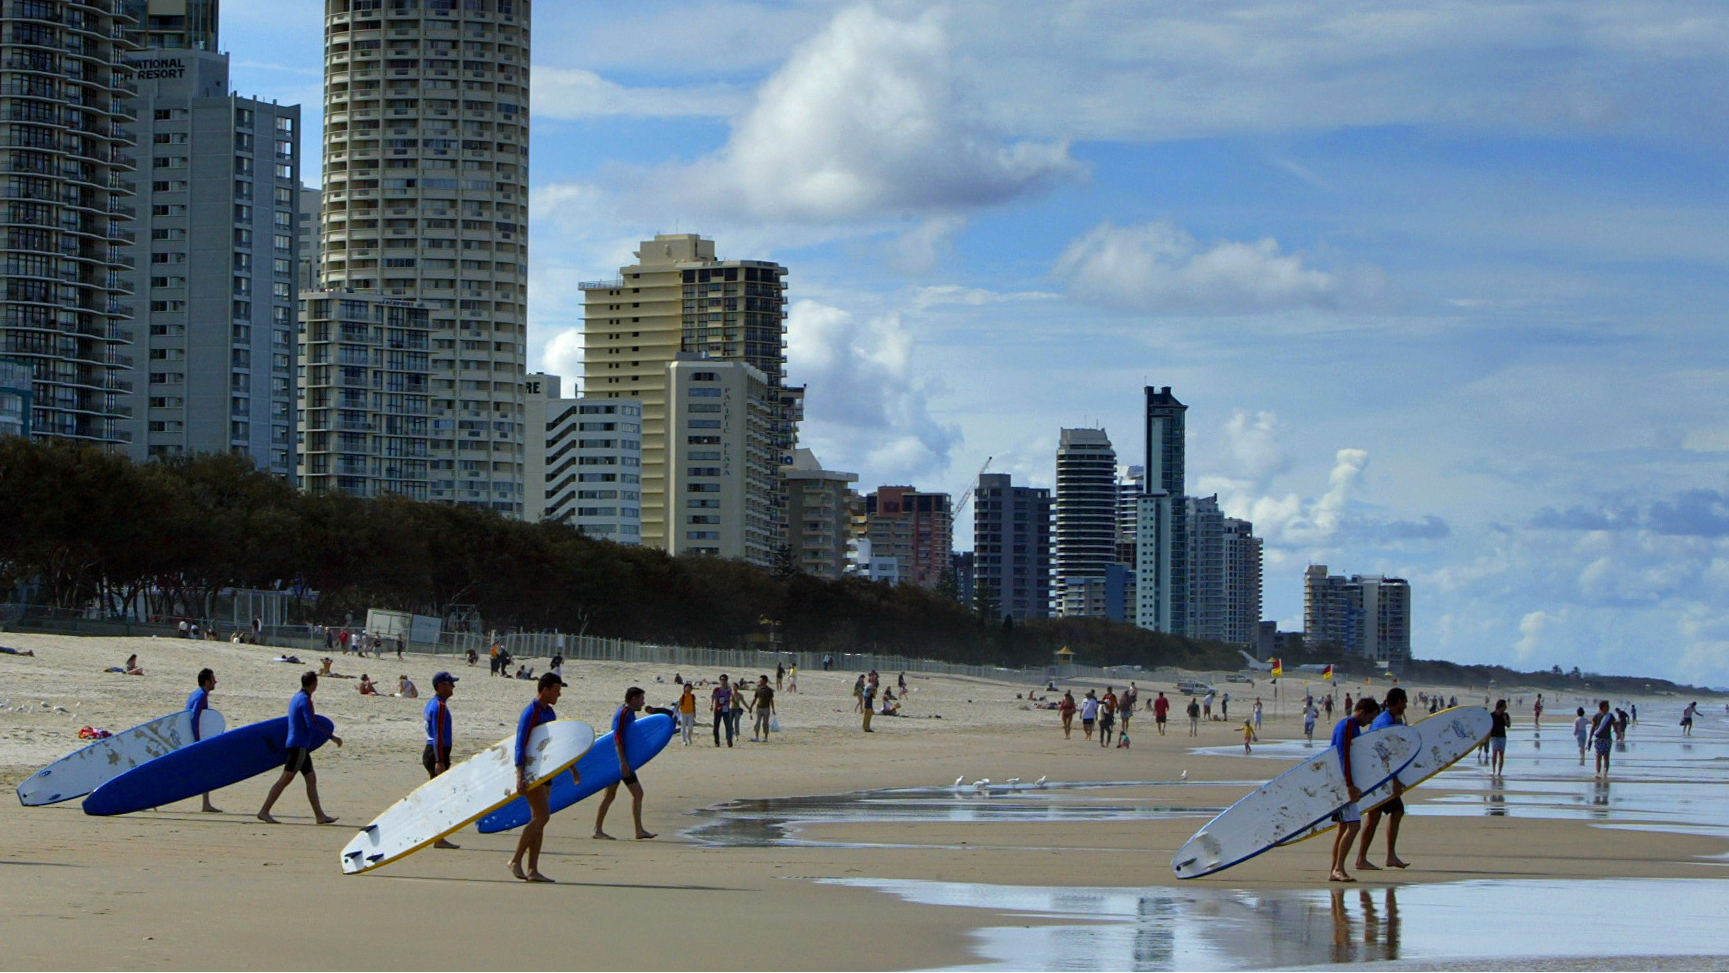 ongboard surfers from a surf school walk into the water at the popular tourist destination of Main Beach at Surfer's Paradise, 60 kilometres southeast of Brisbane, October 17, 2003. The Australian Tourism Commission managing director Ken Boundy said today that the launch of a Qantas low cost domestic airline next year to rival Richard Branson's carrier Virgin Blue would give both domestic and international travellers an advantage, adding that it will encourage foreign visitors to get out beyond the cities. REUTERS/David Gray